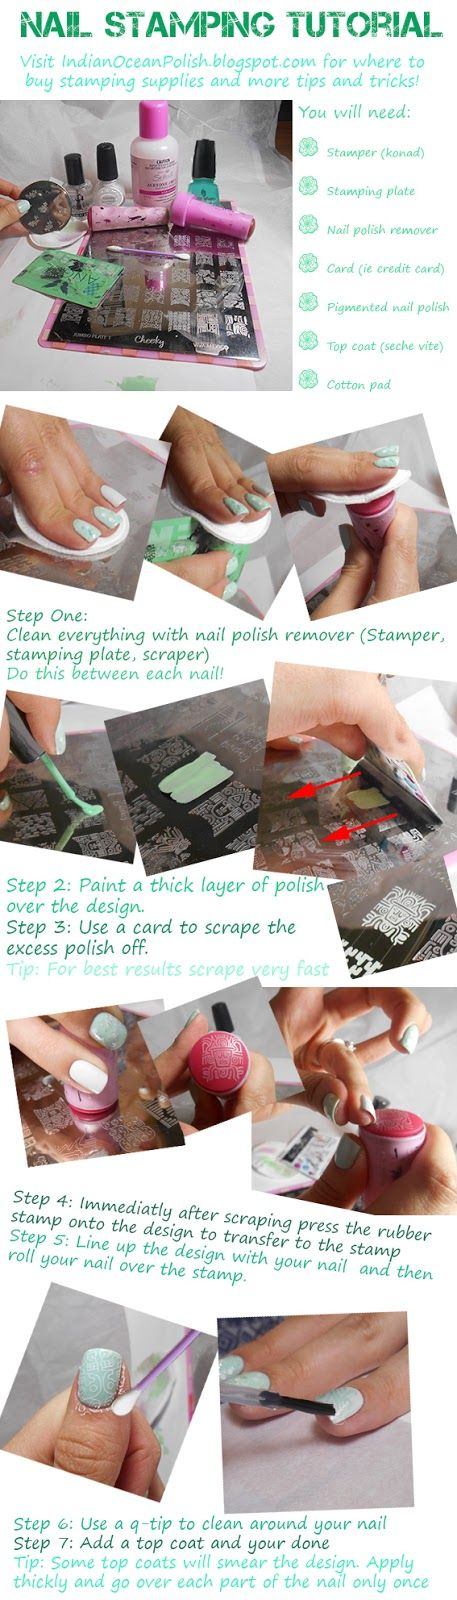 Nail Stamping Tutorial With Tips And Tricks Where To Buy Nail